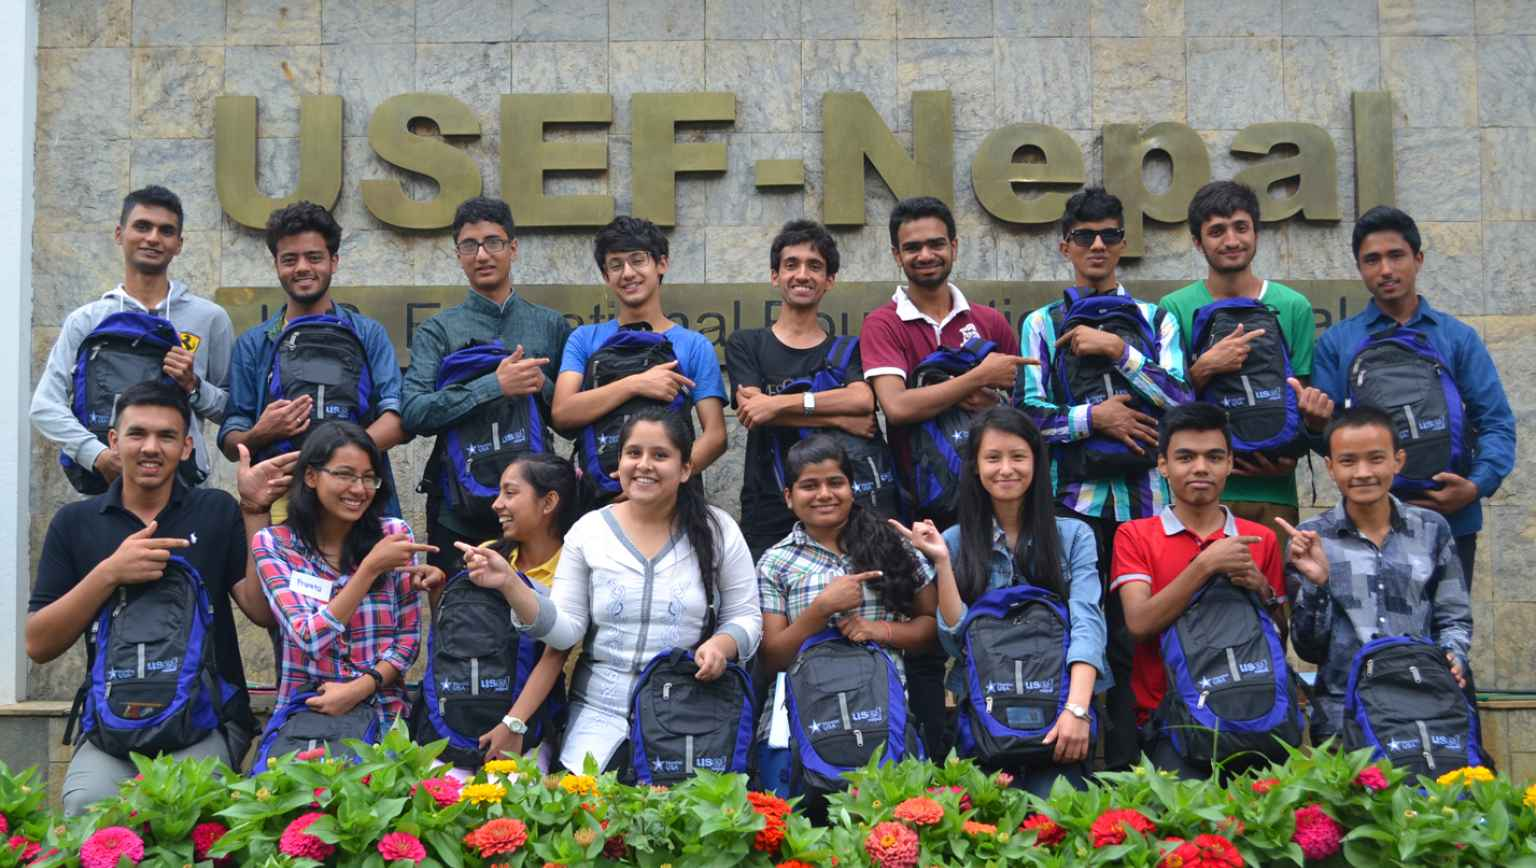 EducationUSA Nepal Opportunity Funds Program students